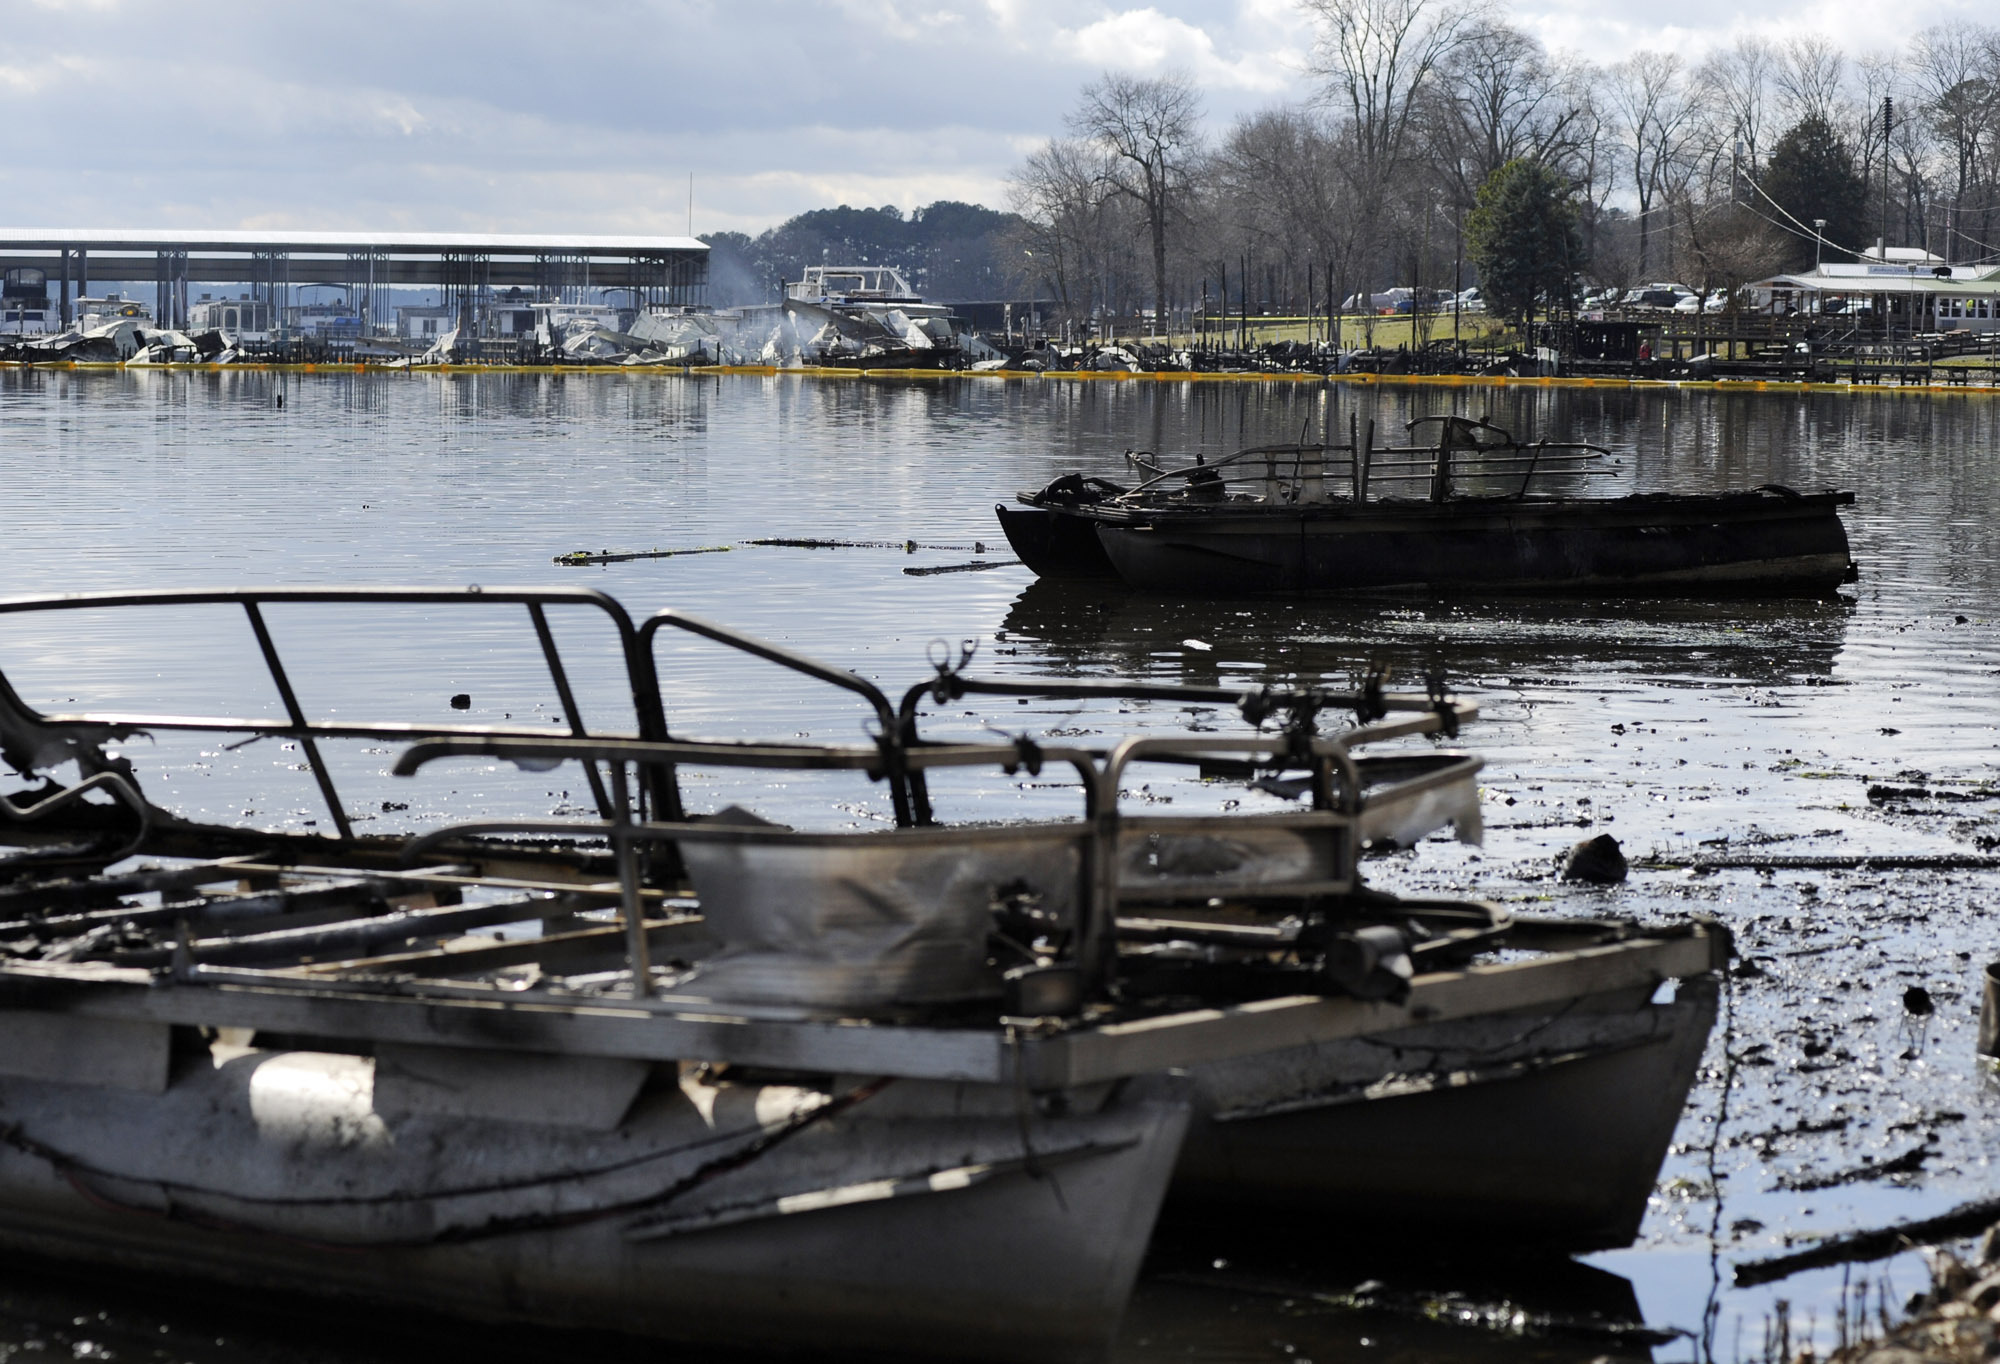 The charred remains of boats are viewed following a fire that authorities say killed at least eight people at a marina in Scottsboro, Ala., on Jan. 27, 2020.